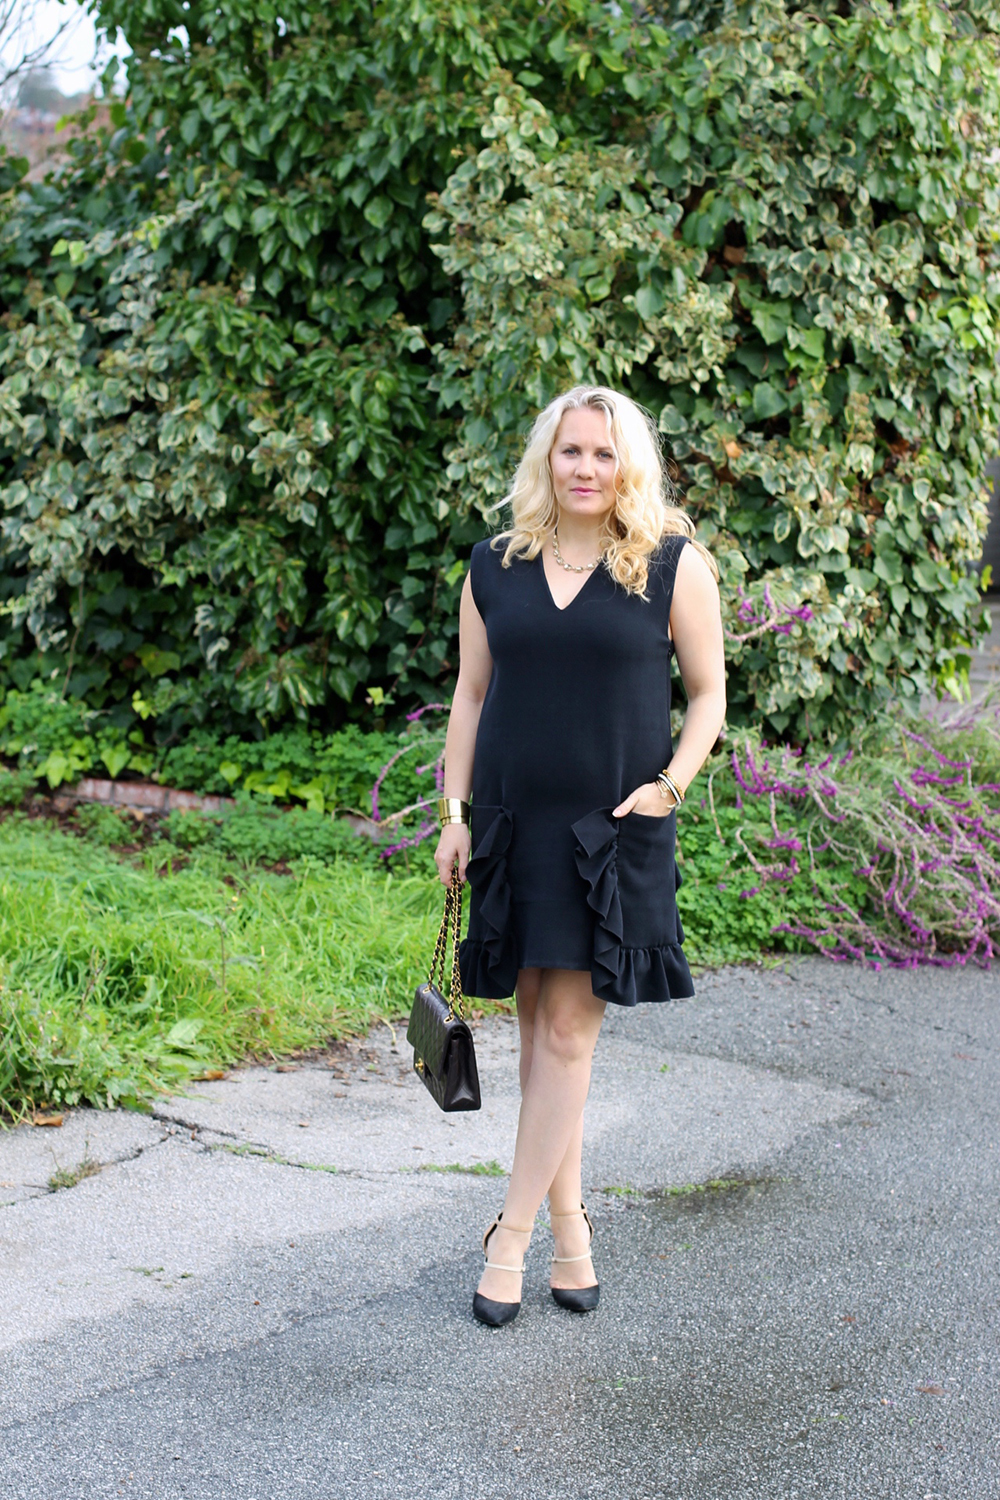 lbd-little-black-dress-ruffle-pockets-marni-rent-the-runway-outfit-inspiration-holiday-style-guide-have-need-want-11